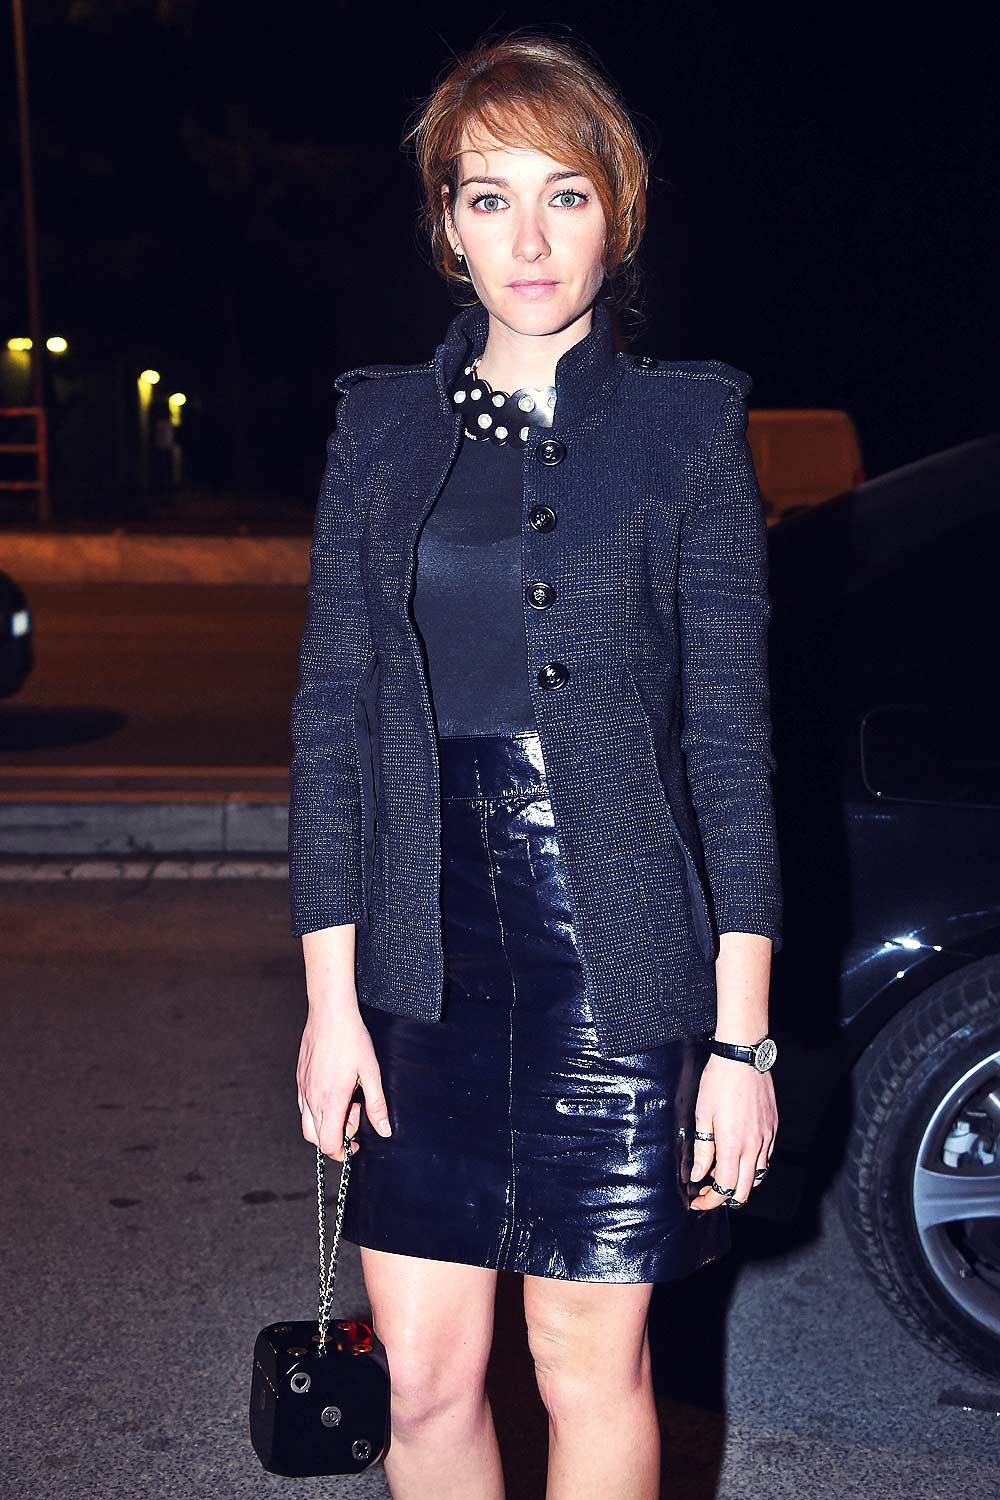 Cristiana Capotondi attends Chanel Metiers d'Art 2015/16 Fashion Show